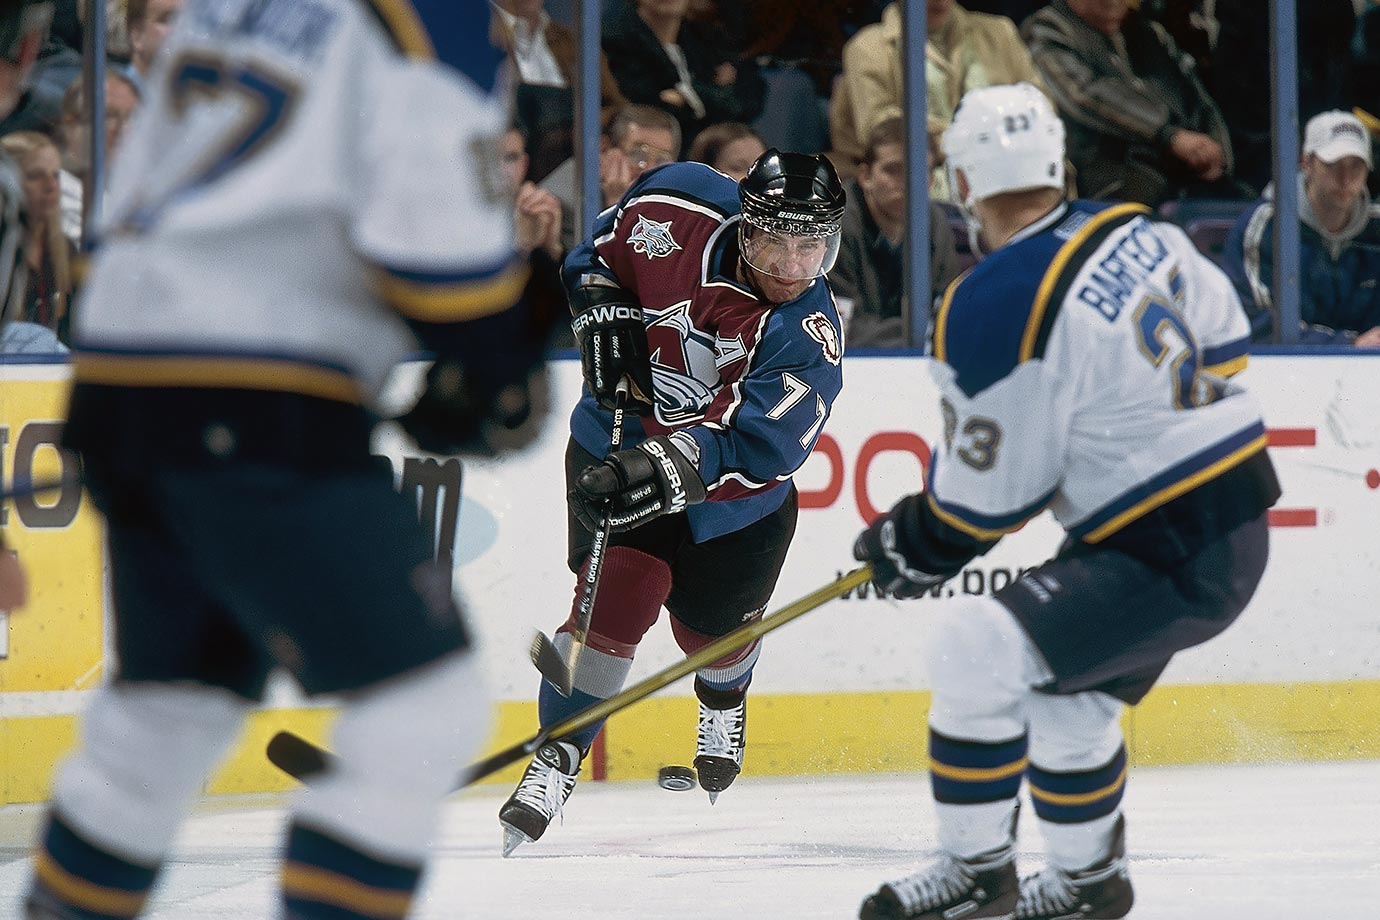 March 8, 2001 — Colorado Avalanche vs. St. Louis Blues